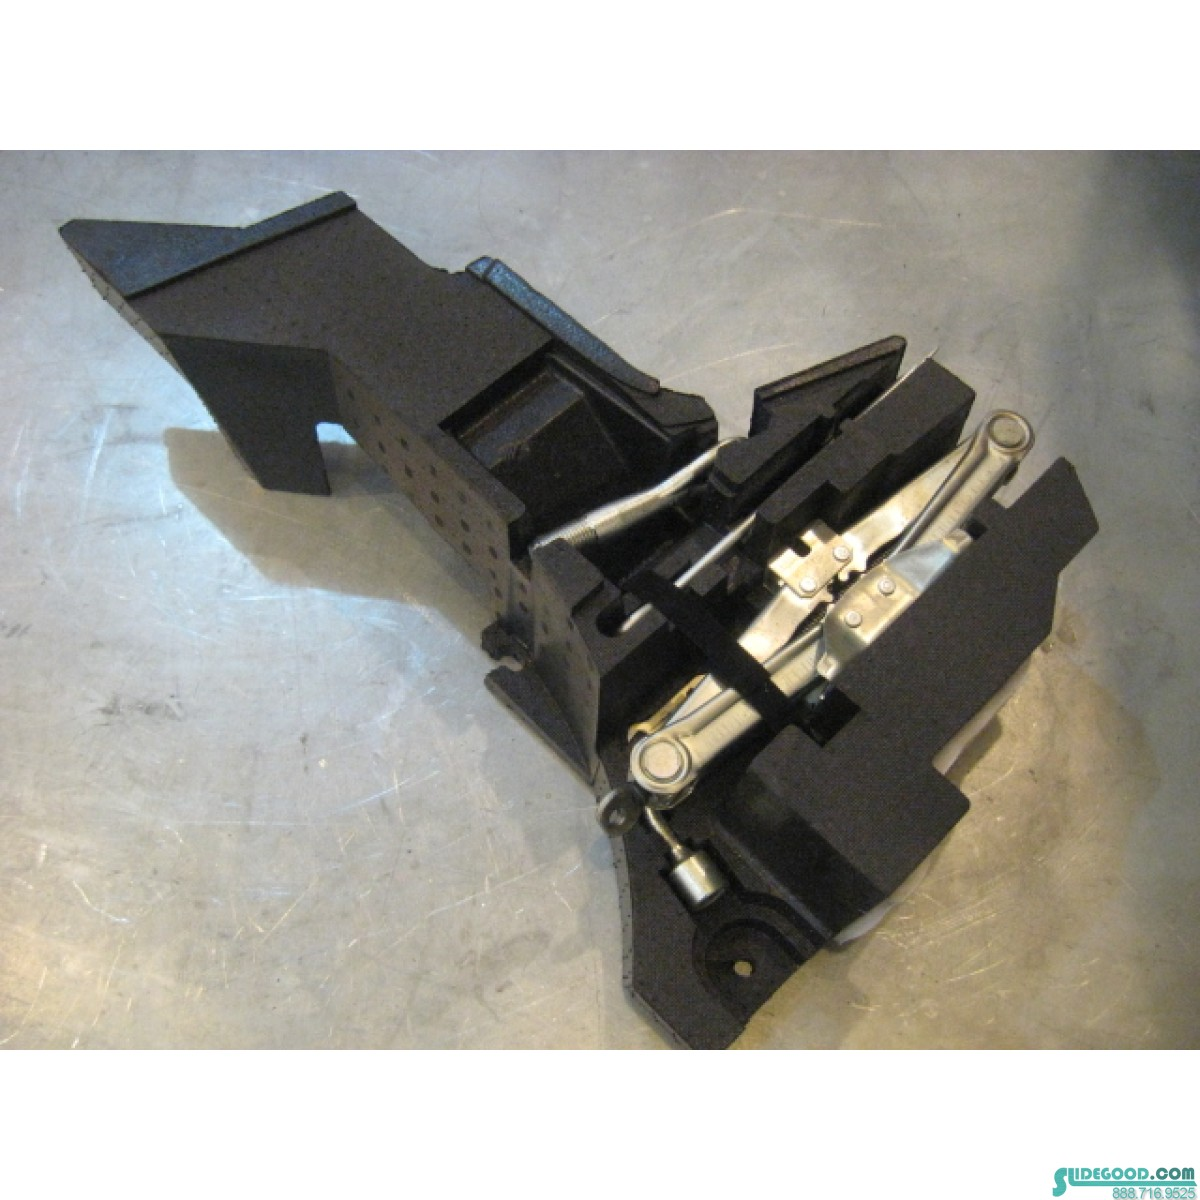 07 Nissan 350z Rear Rh Trunk Foam Jack Set R18362